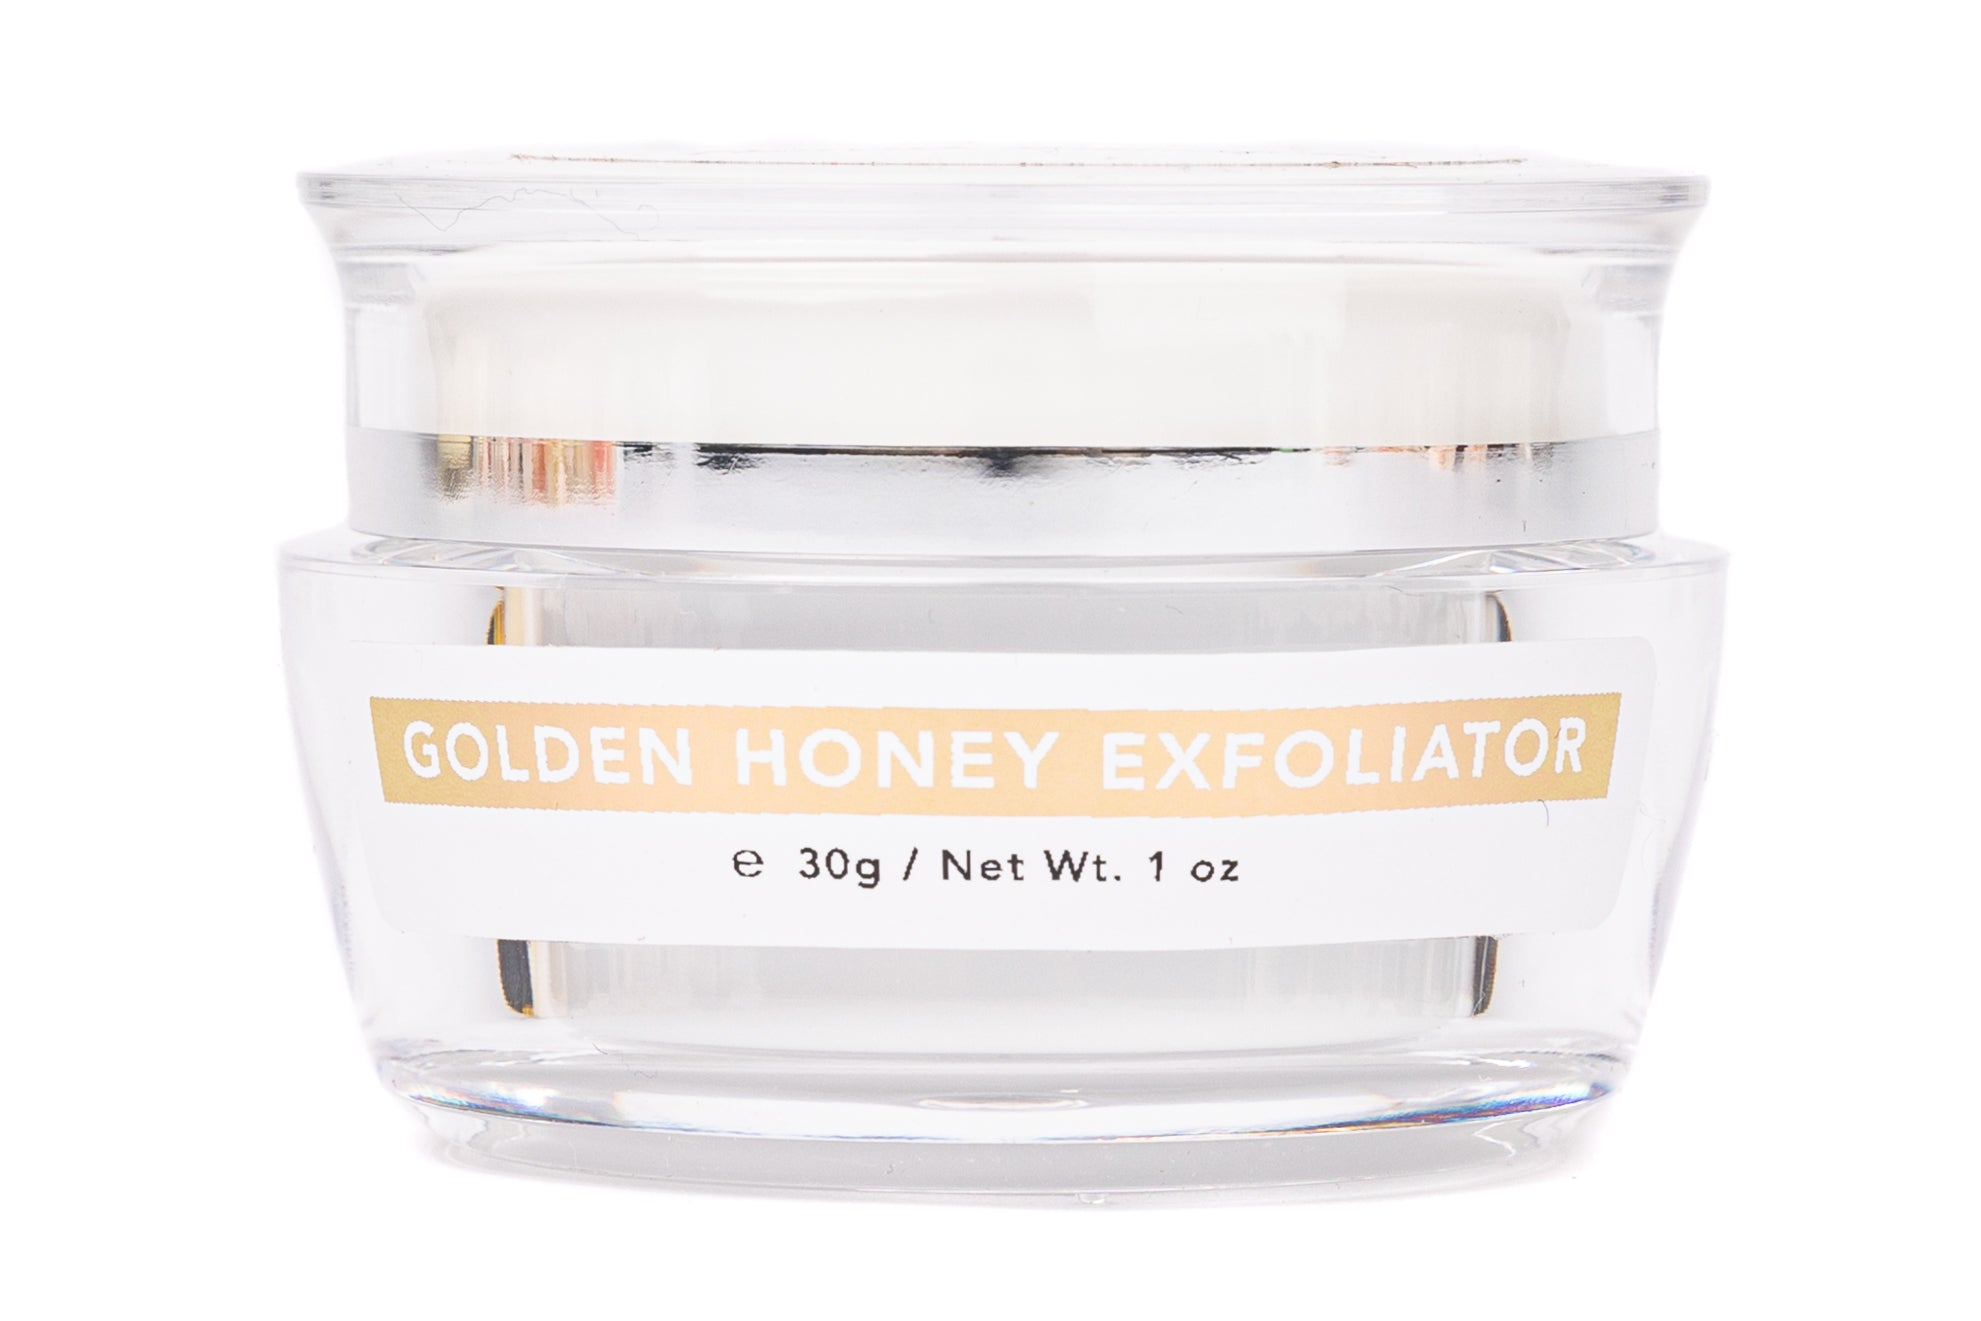 Golden Honey Exfoliator